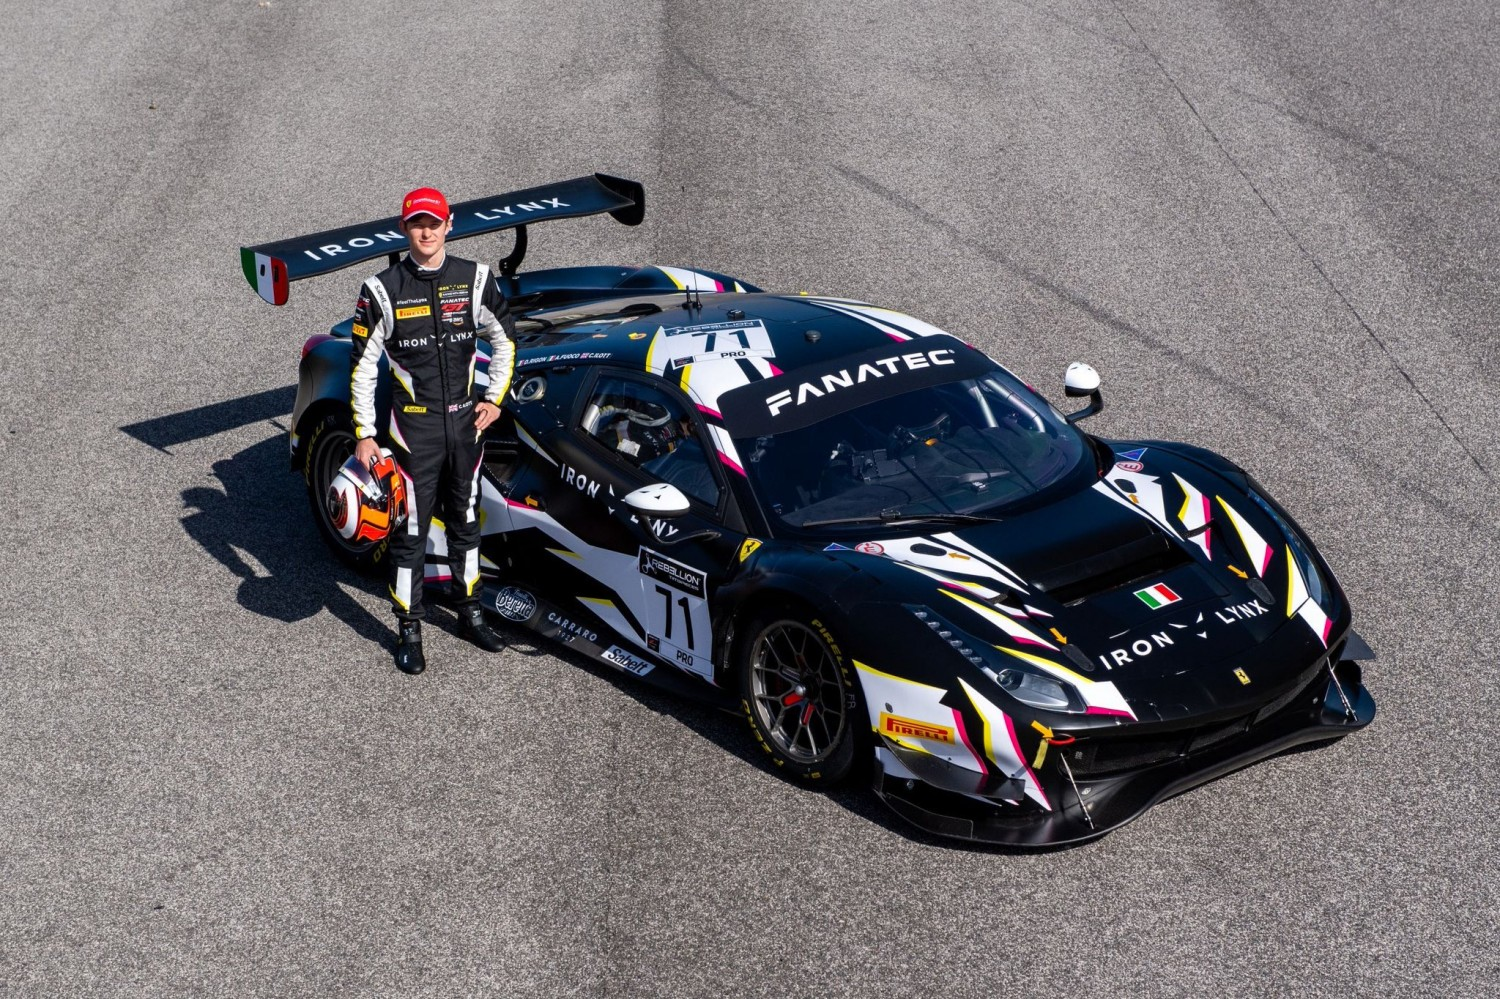 Ferrari Driver Academy member Callum Ilott to make Fanatec GT World Challenge Europe Powered by AWS debut with Iron Lynx